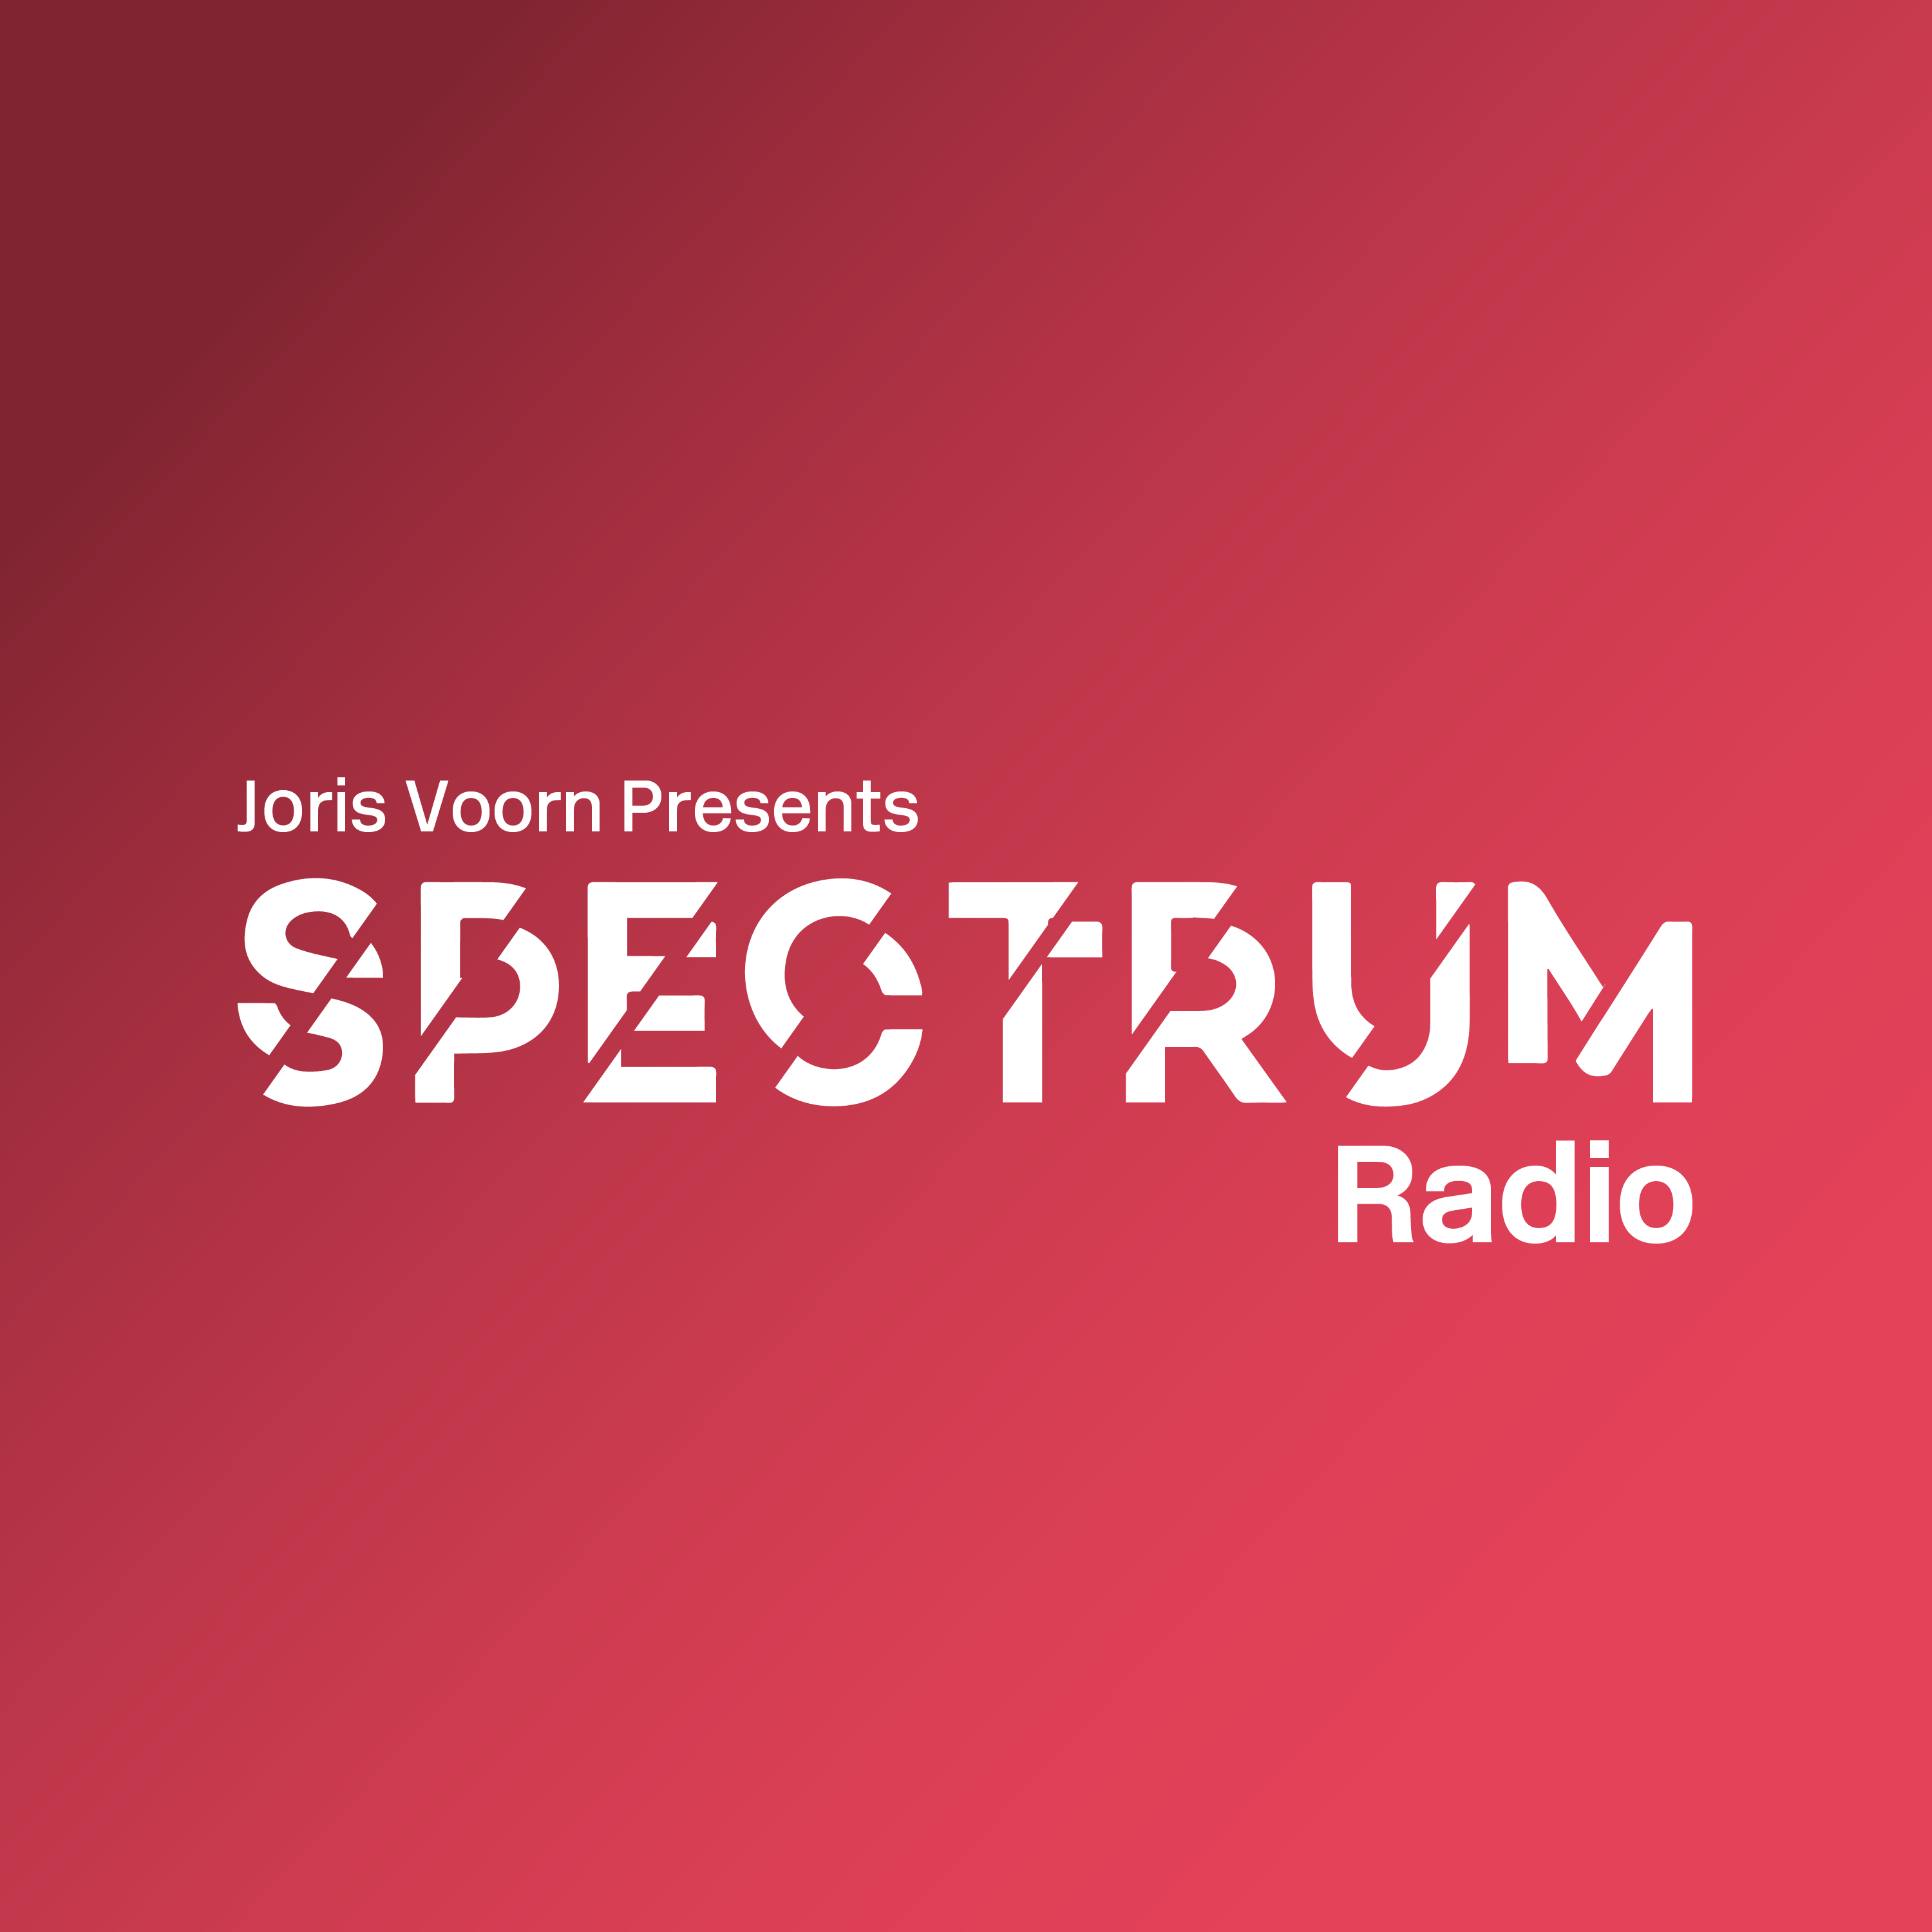 Delta Podcasts - Spectrum Radio by Joris Voorn (01.07.2018)